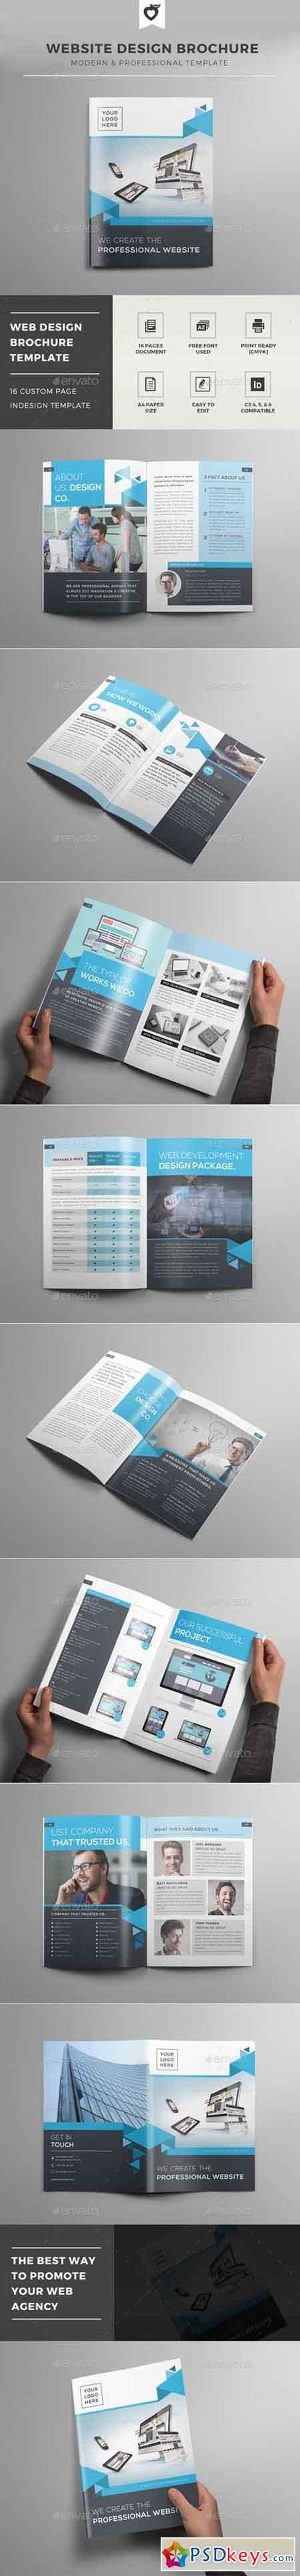 Website Design Brochure Template 12502679